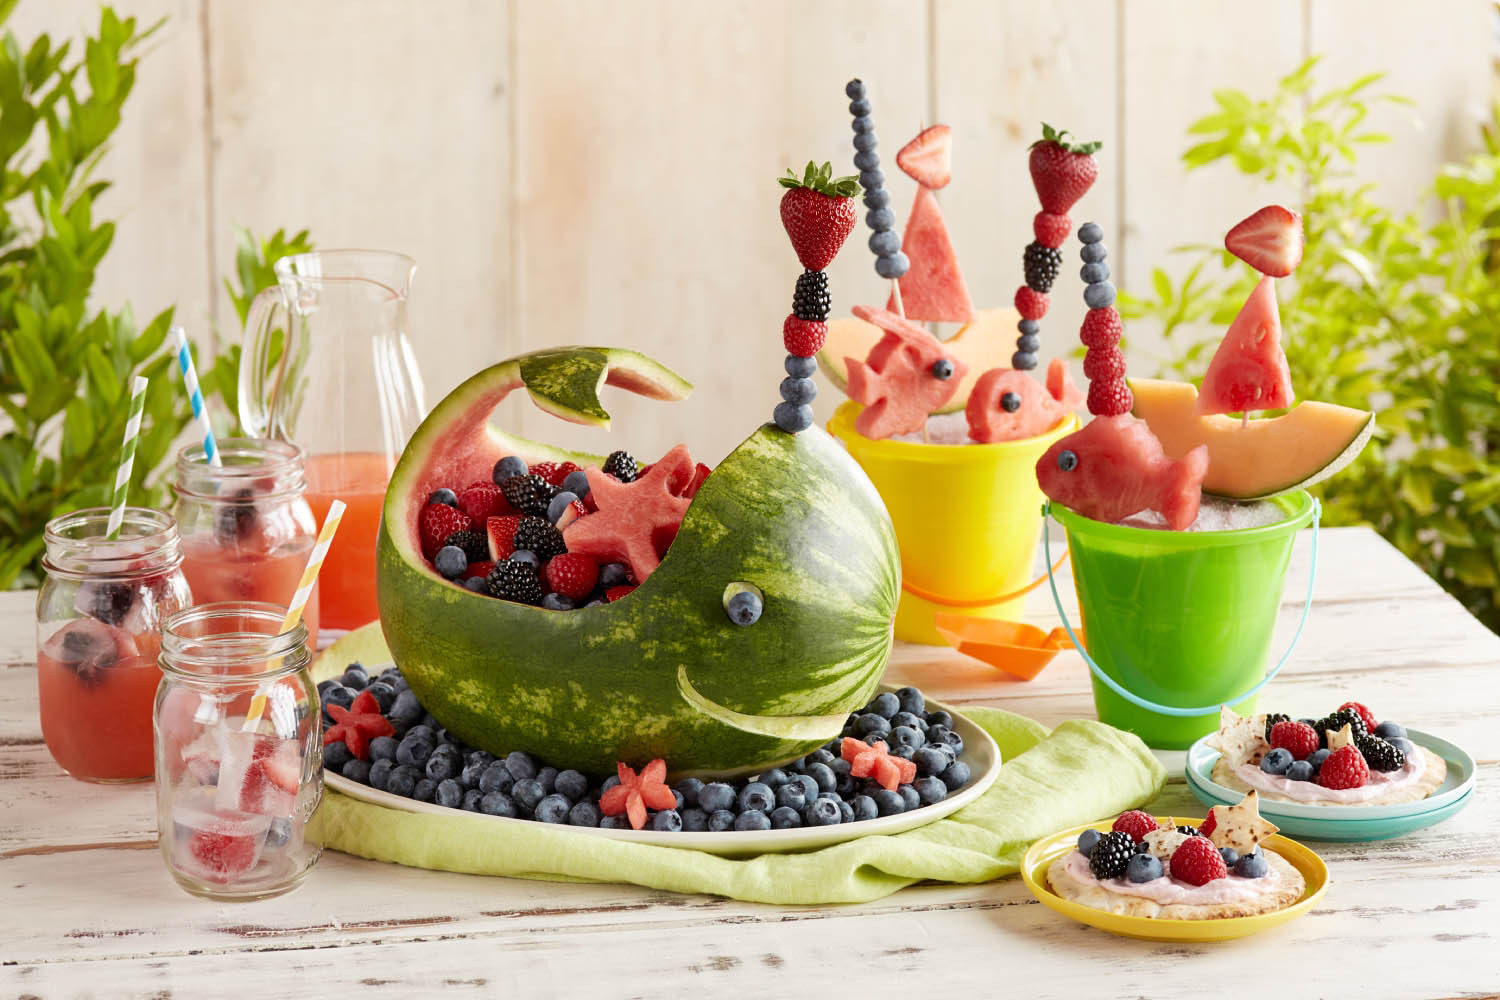 Beach Party Food Menu Ideas  Splash into Summer with a Berry Beach Party